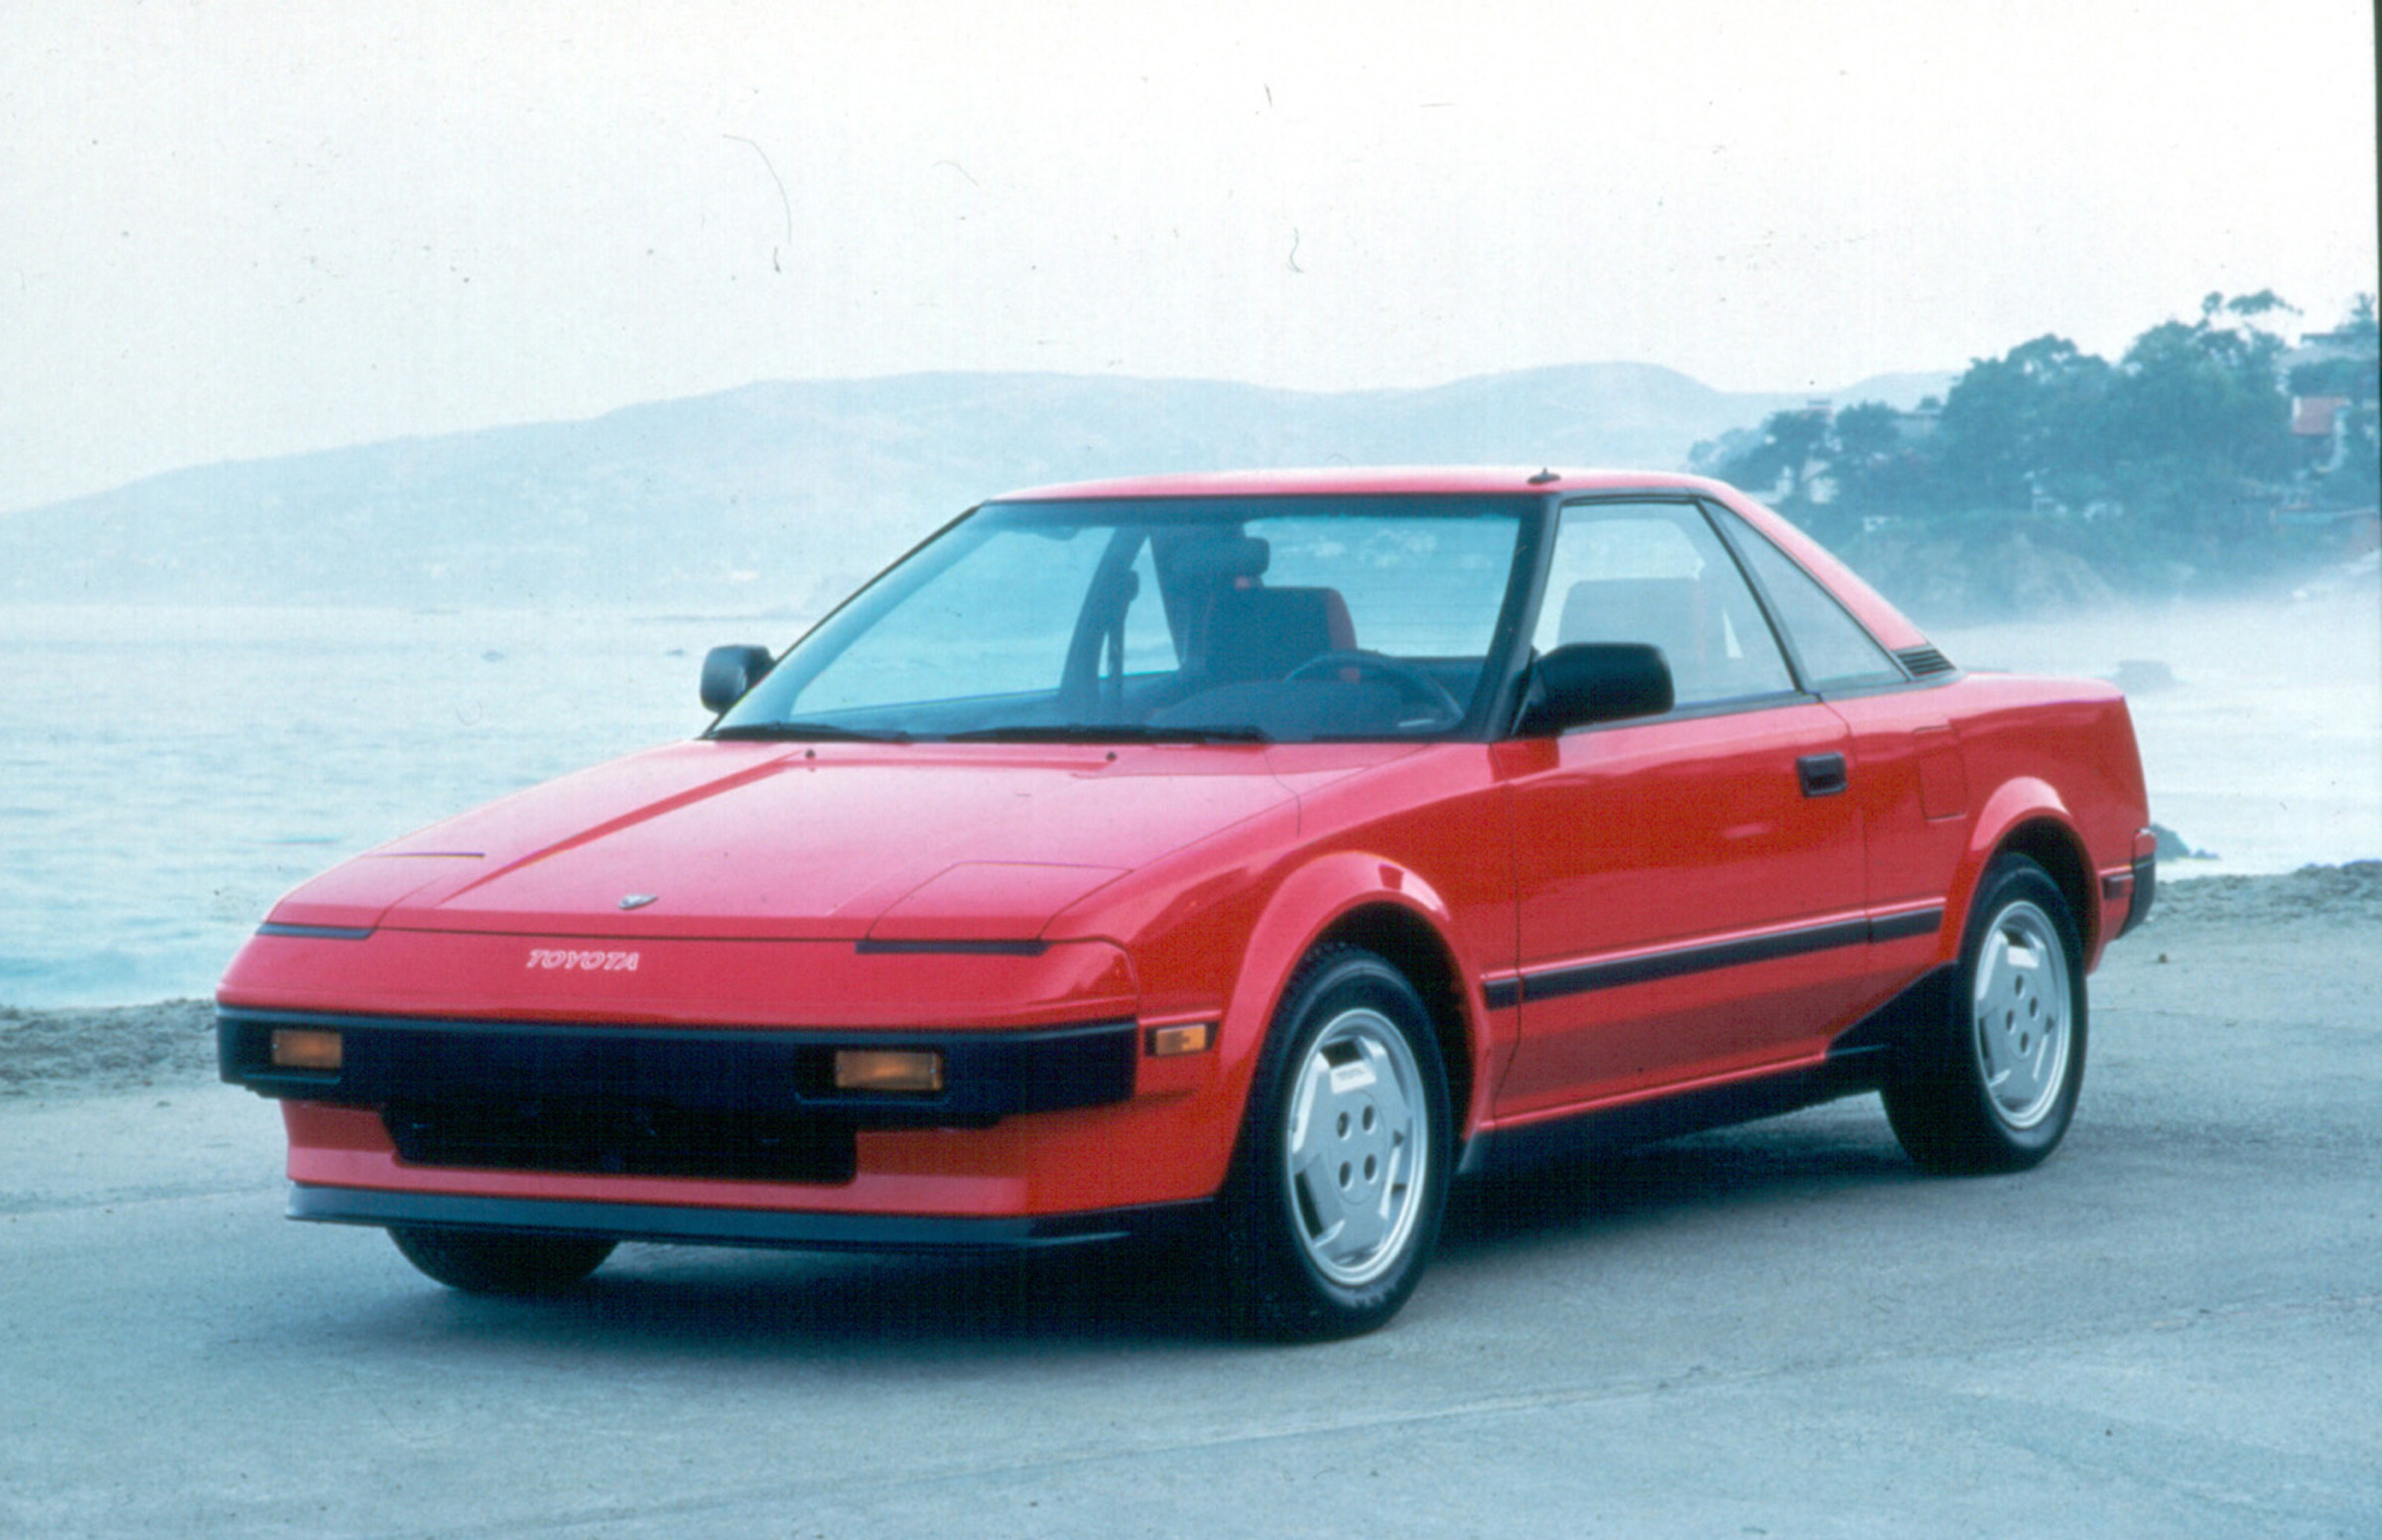 Red 1985 Toyota MR2